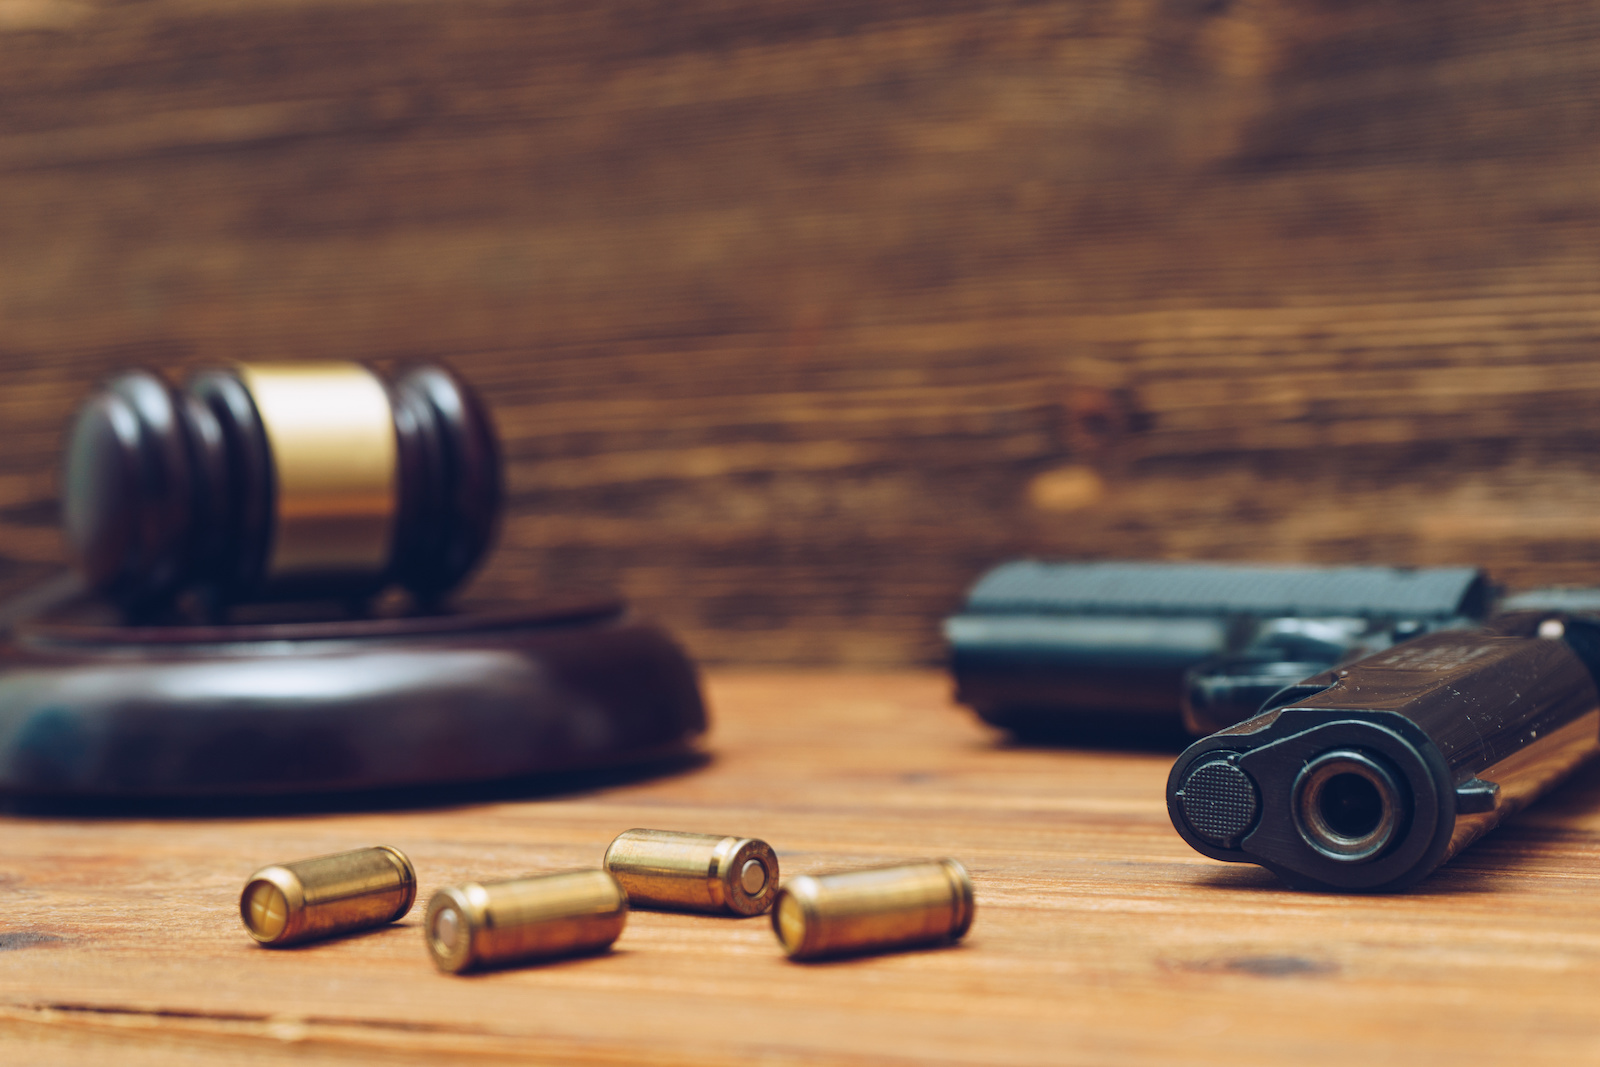 Senate Bill 620 - Strike that Gun Enhancement! |The Law Offices of Bryan R. Kazarian - Los Angeles County Criminal Defense Attorneys - property, juvenile, petty theft, DUI, misdemeanor, and felony Criminal Law